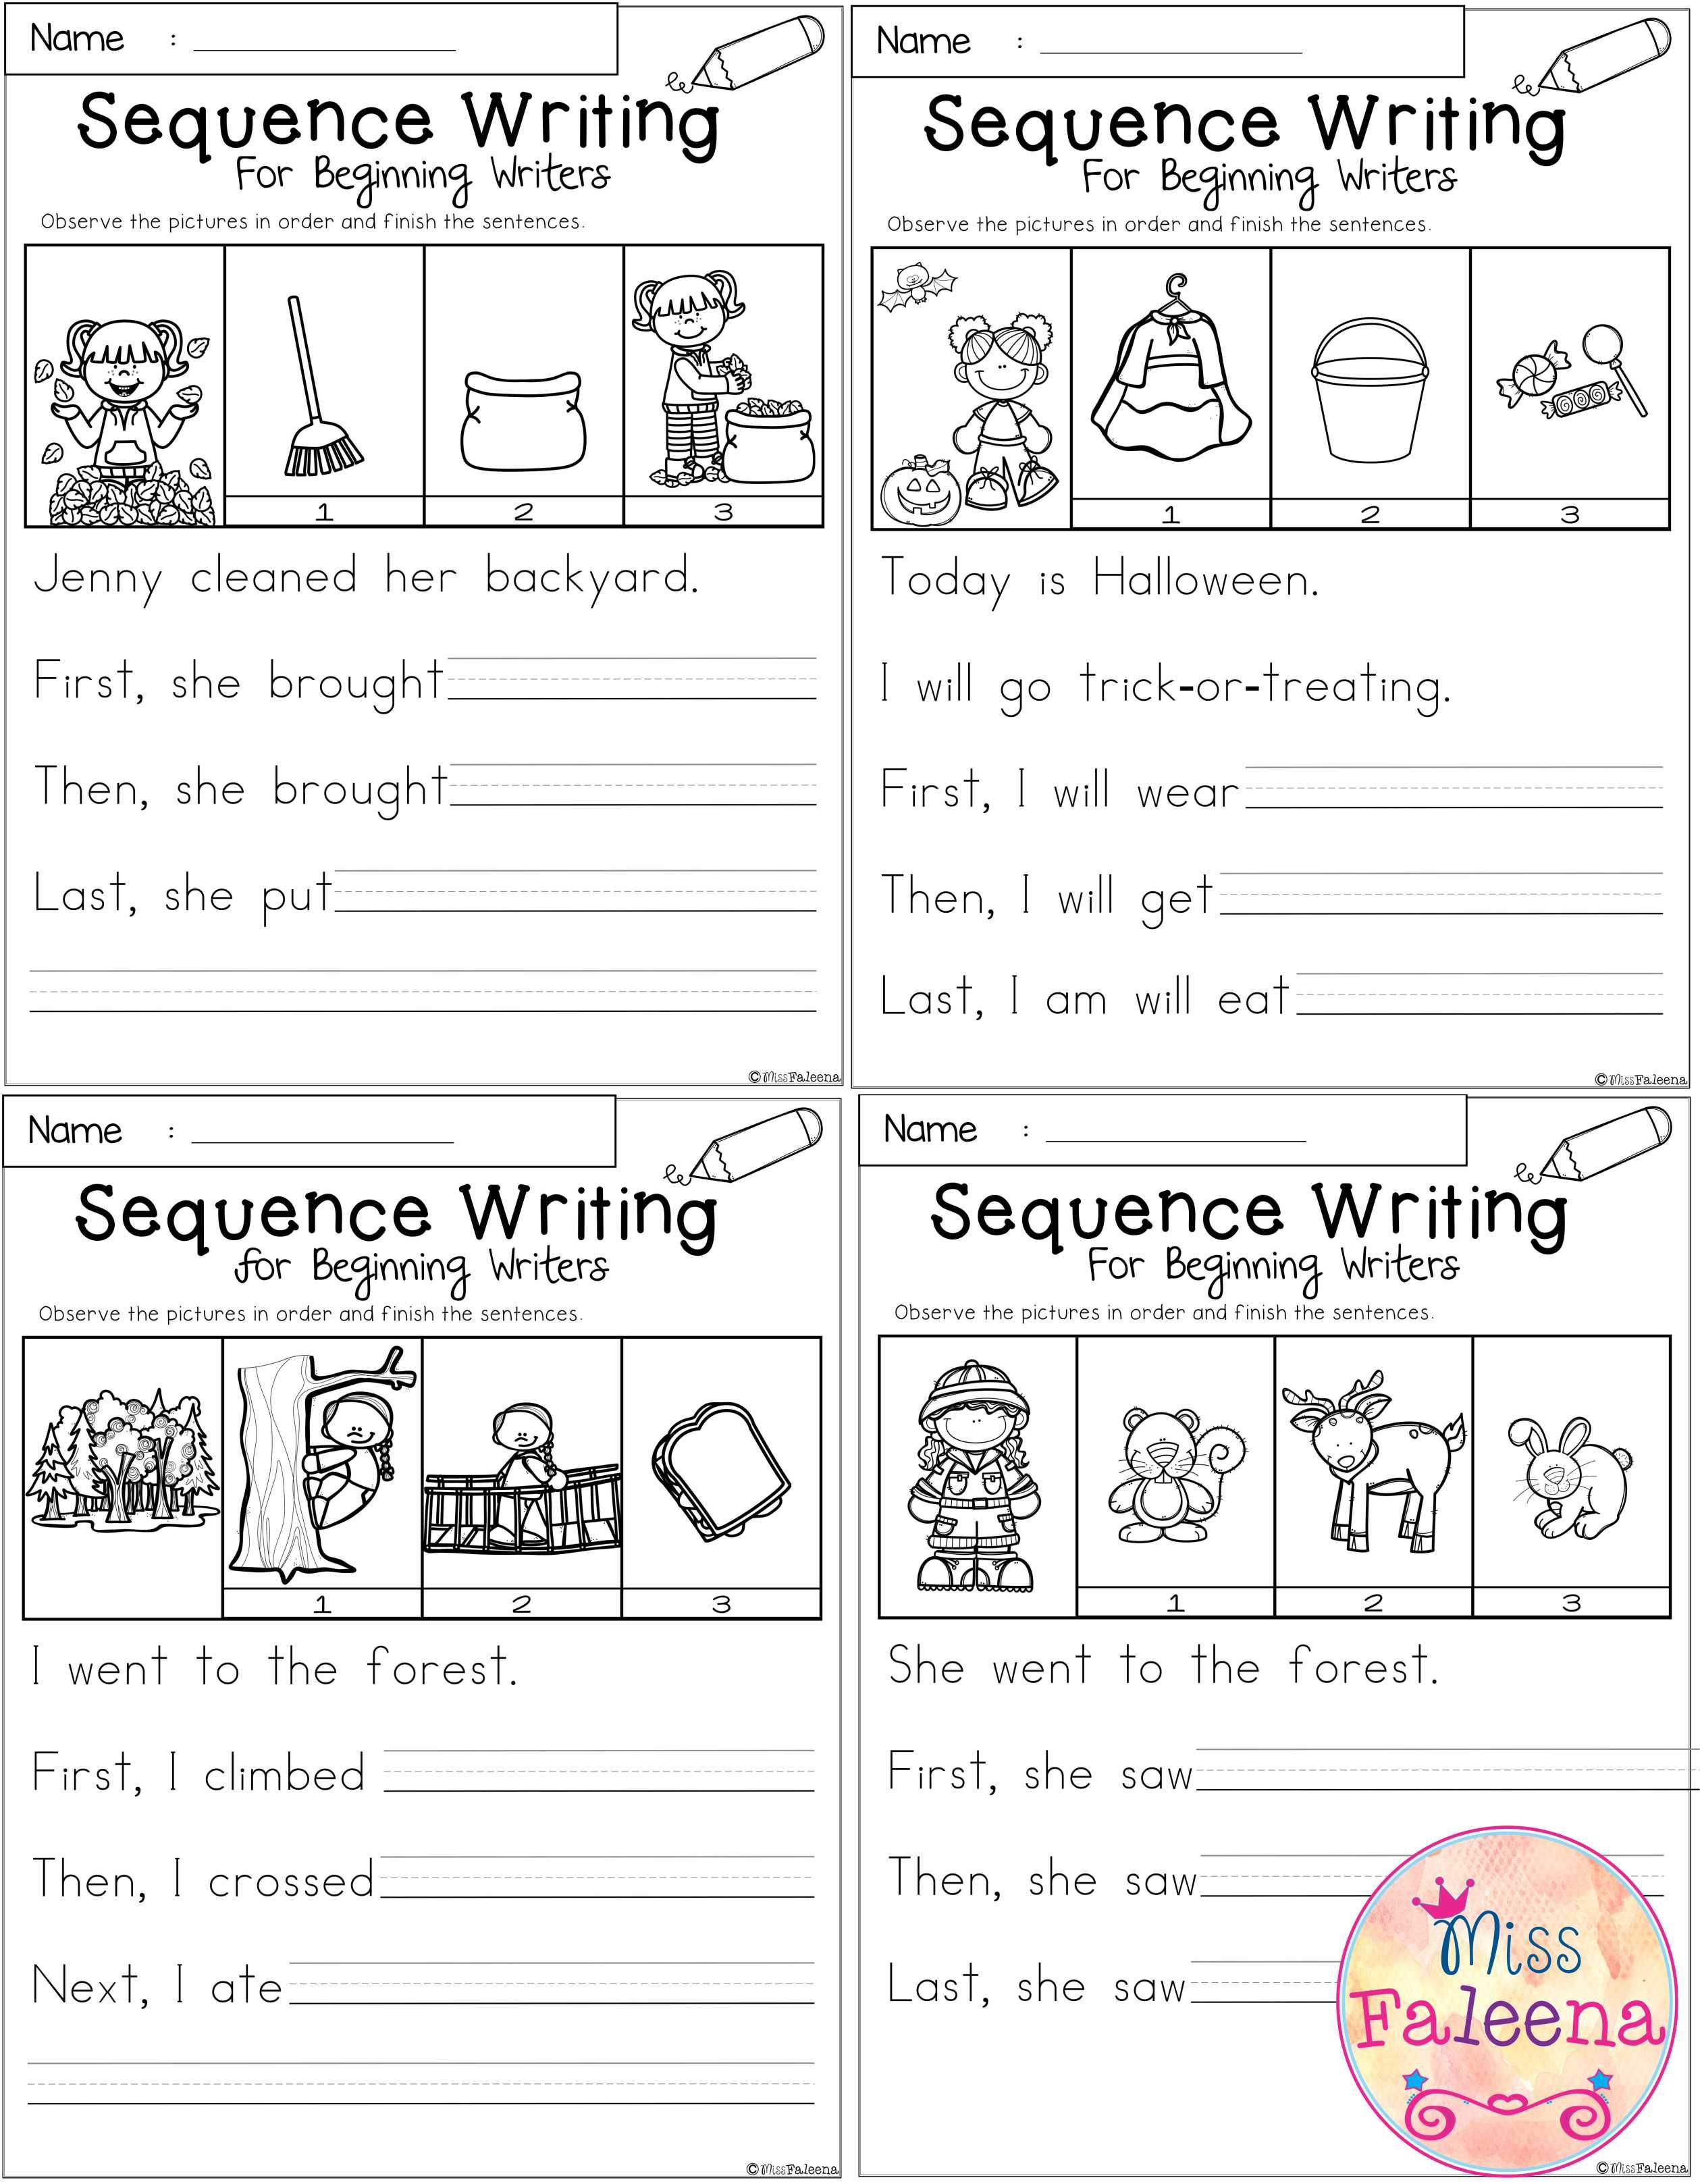 October Sequence Writing Contains 30 Pages Of Narrative Prompts Worksheets Students Will Obser Sequence Writing Kindergarten Writing Prompts Teaching Writing